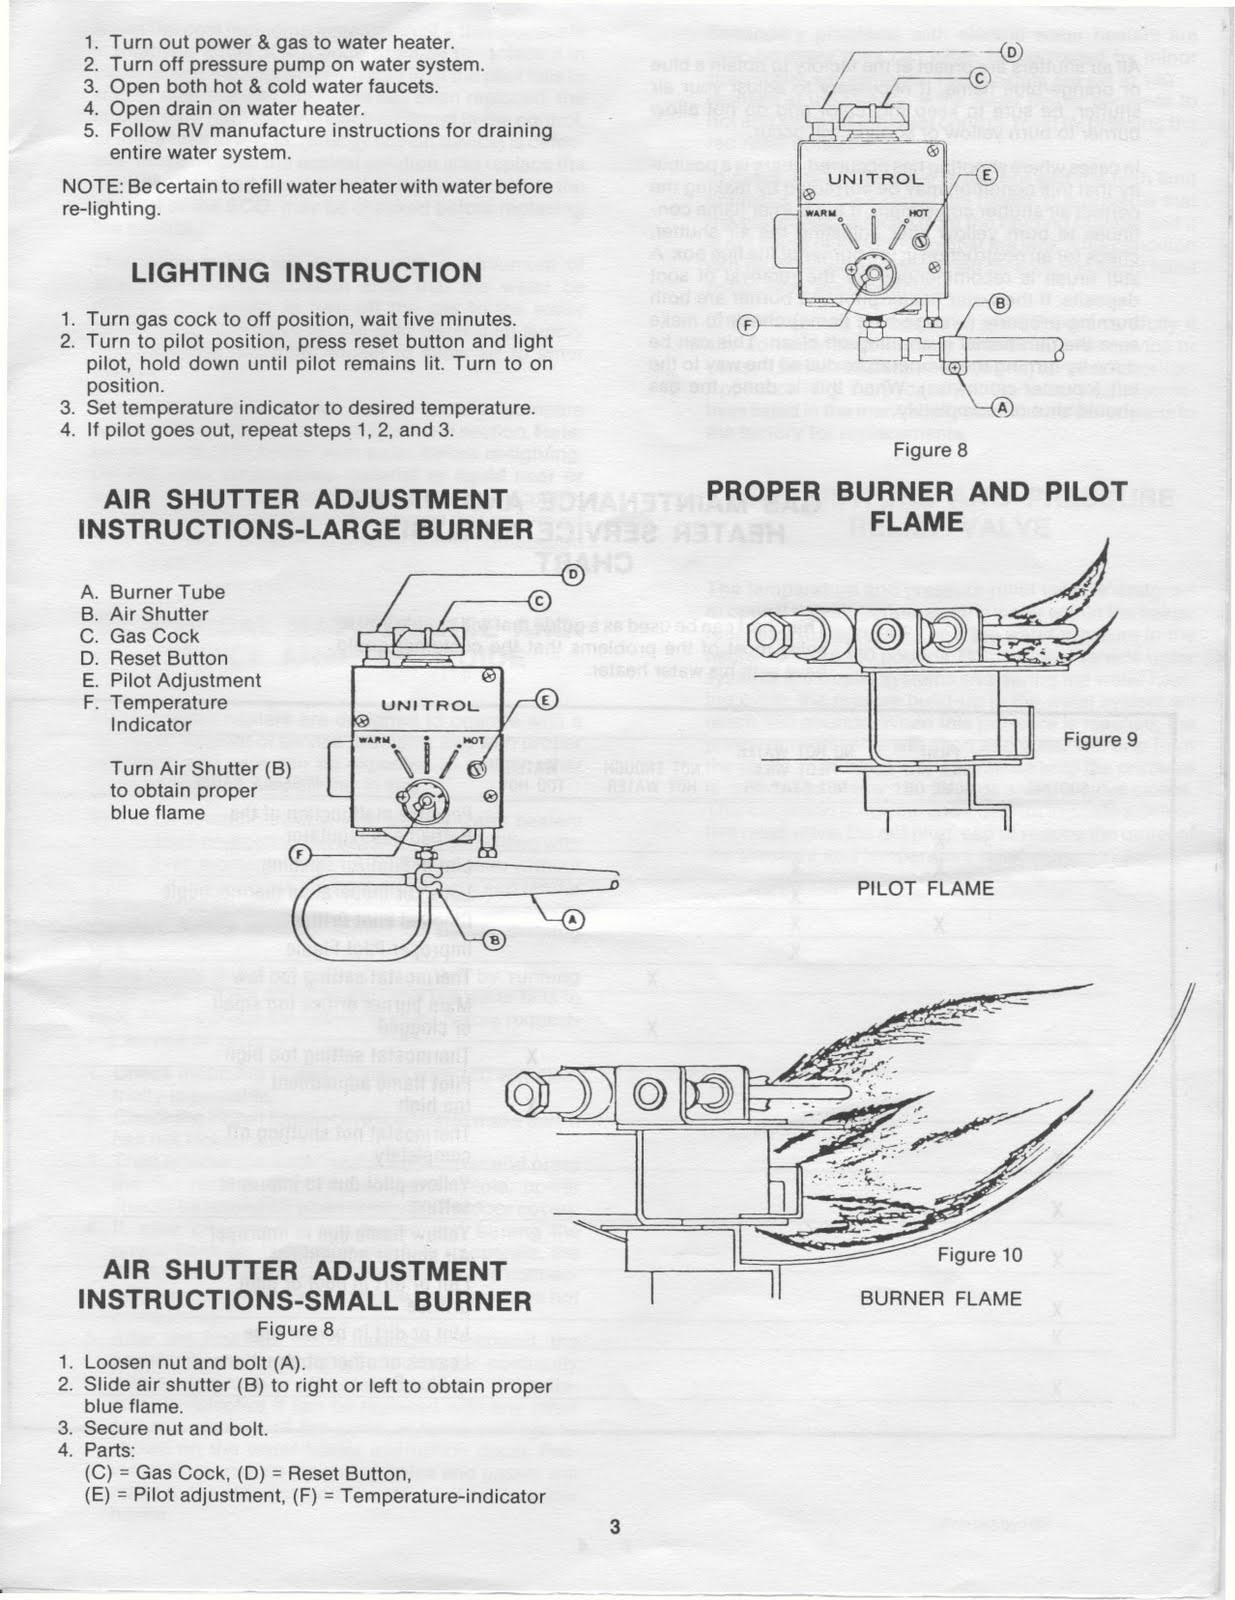 medium resolution of mor flo water heater installation and service manual 6500015